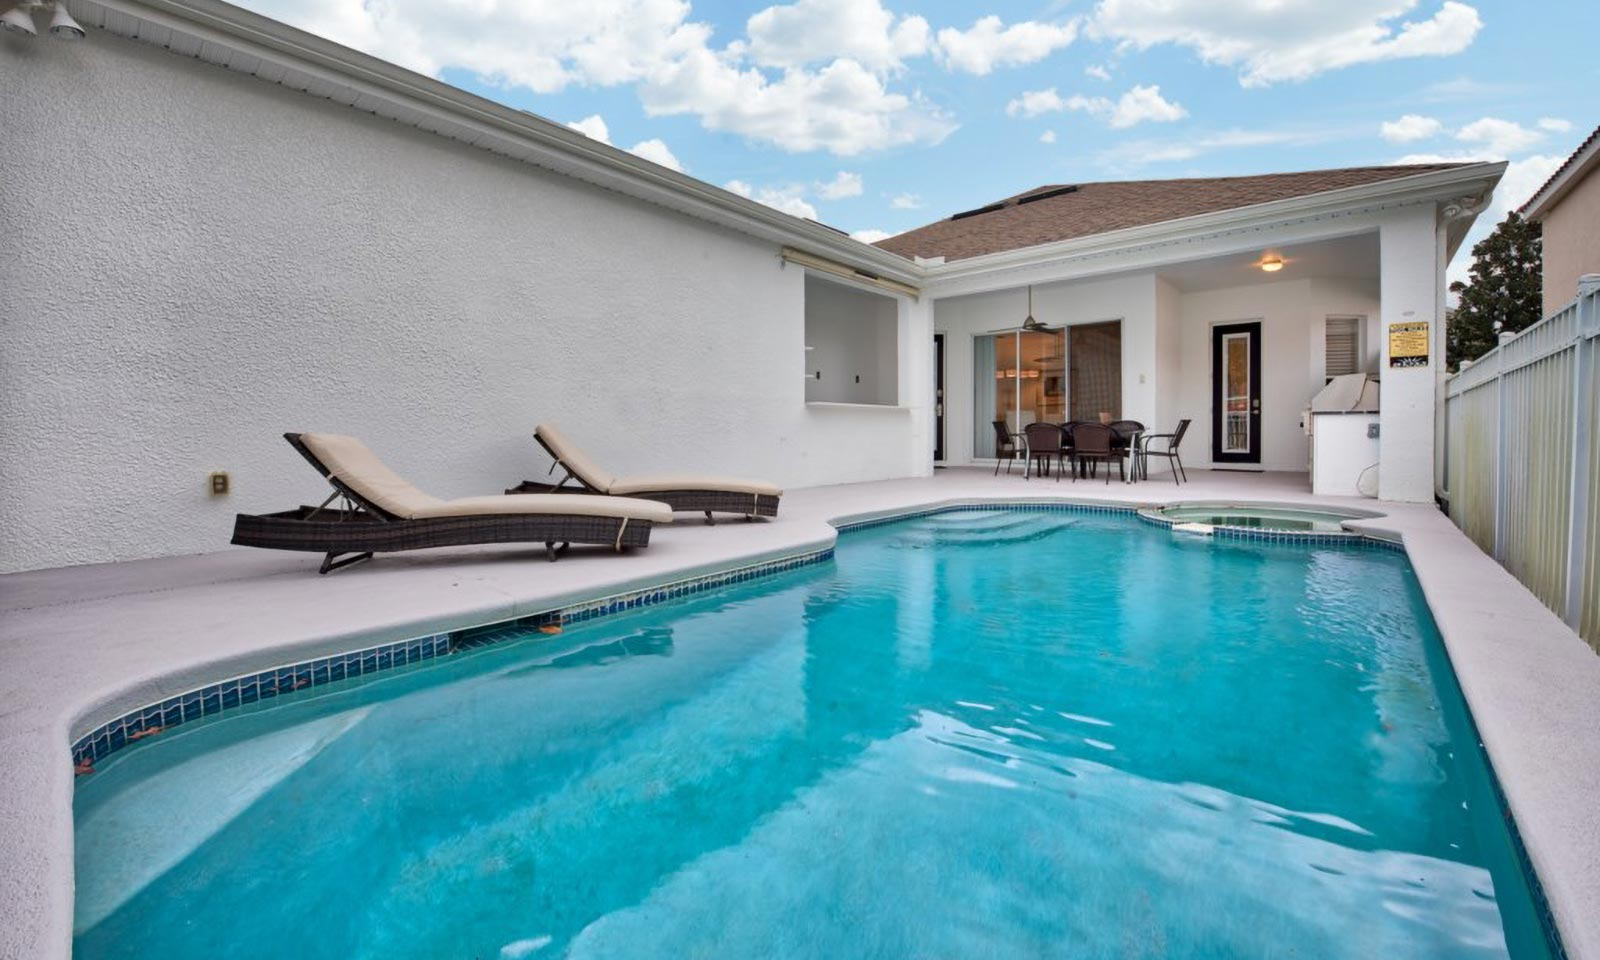 [amenities:Pool-and-Spa:3] Pool and Spa